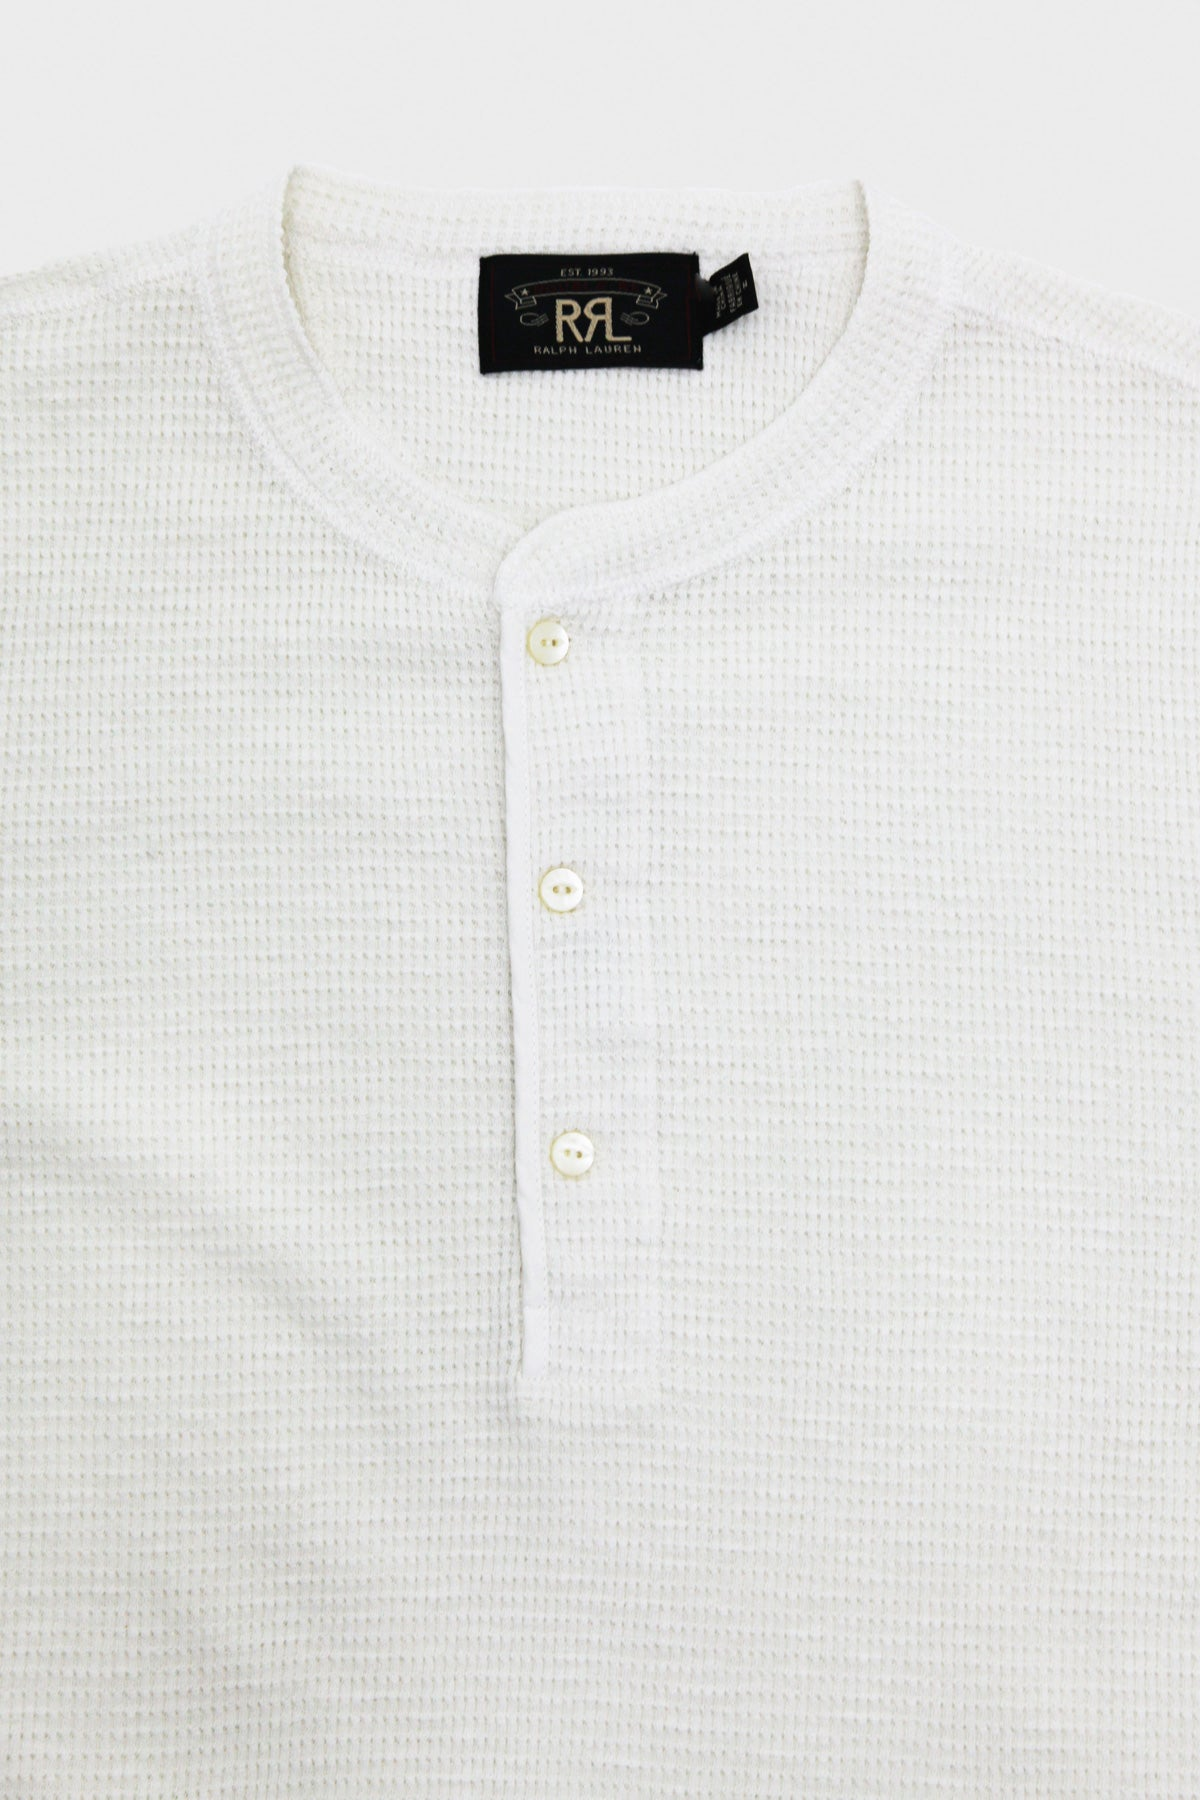 RRL - Waffle-Knit Henley Shirt - Paper White - Canoe Club